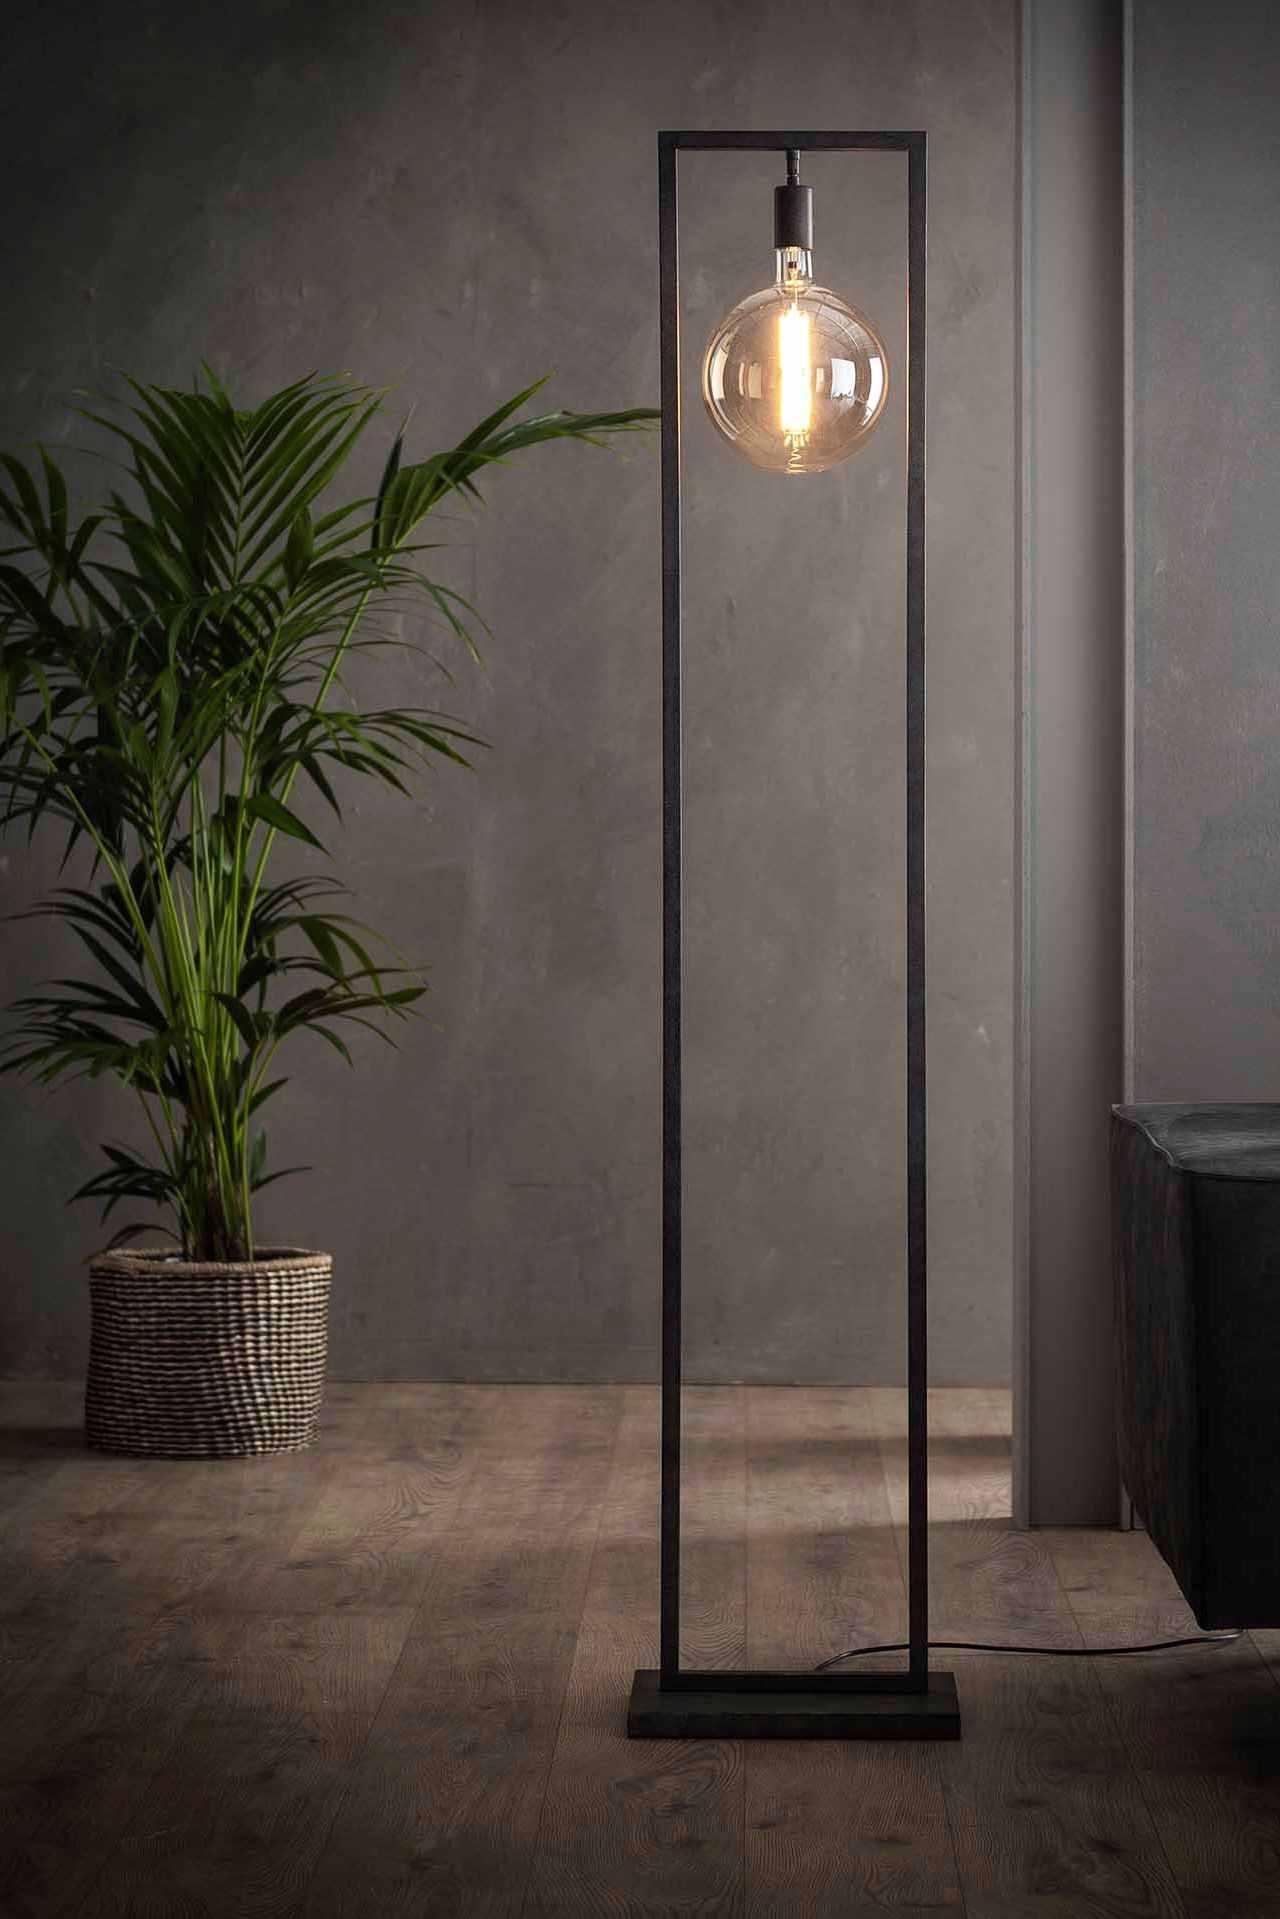 Pin By Lawrence Paucek On Life In 2020 Lamp Decor Lamp Design